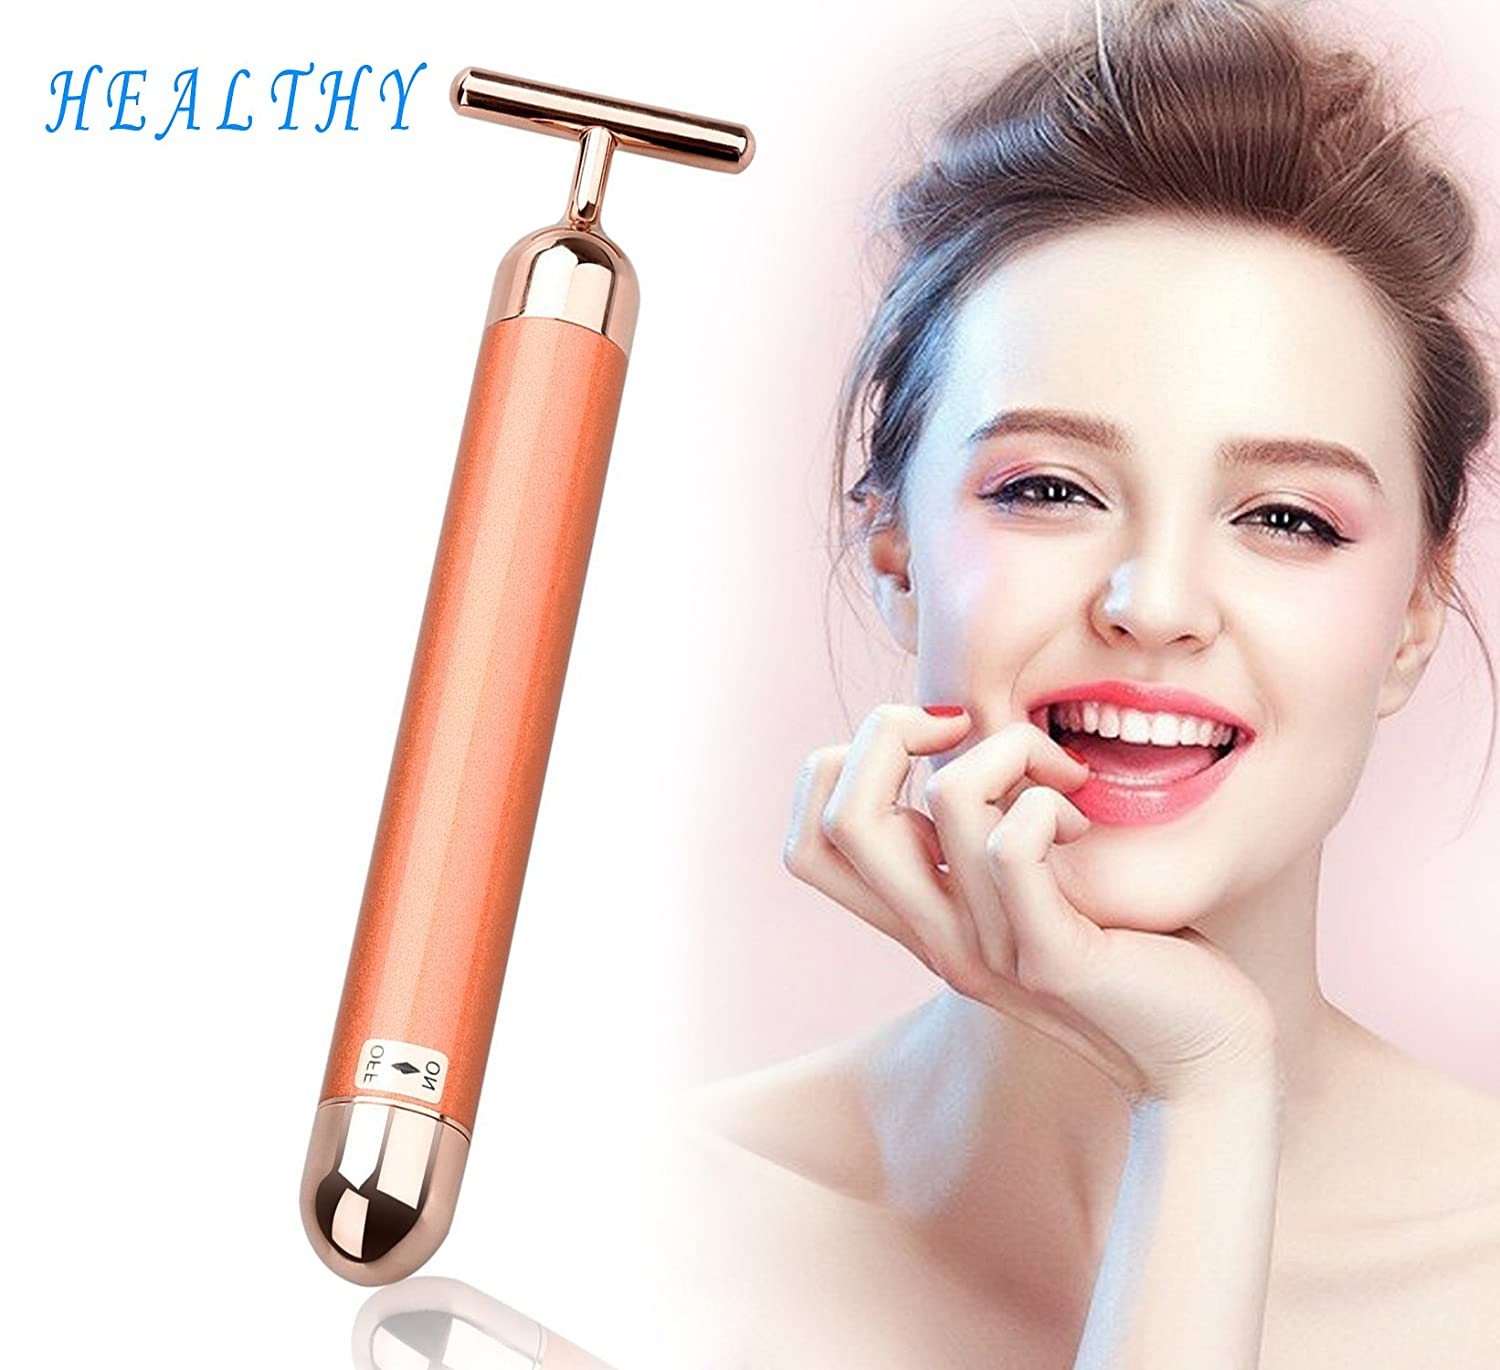 Valentine gift Facial Skin Tightening Roller Massager - 24k Golden Beauty Bar - T Shape Electric Anti-aging Pulse Skin Care - - Face-lift Firming Electric Vibration Massager HJB-1 Healthy-EU AHGRD001123